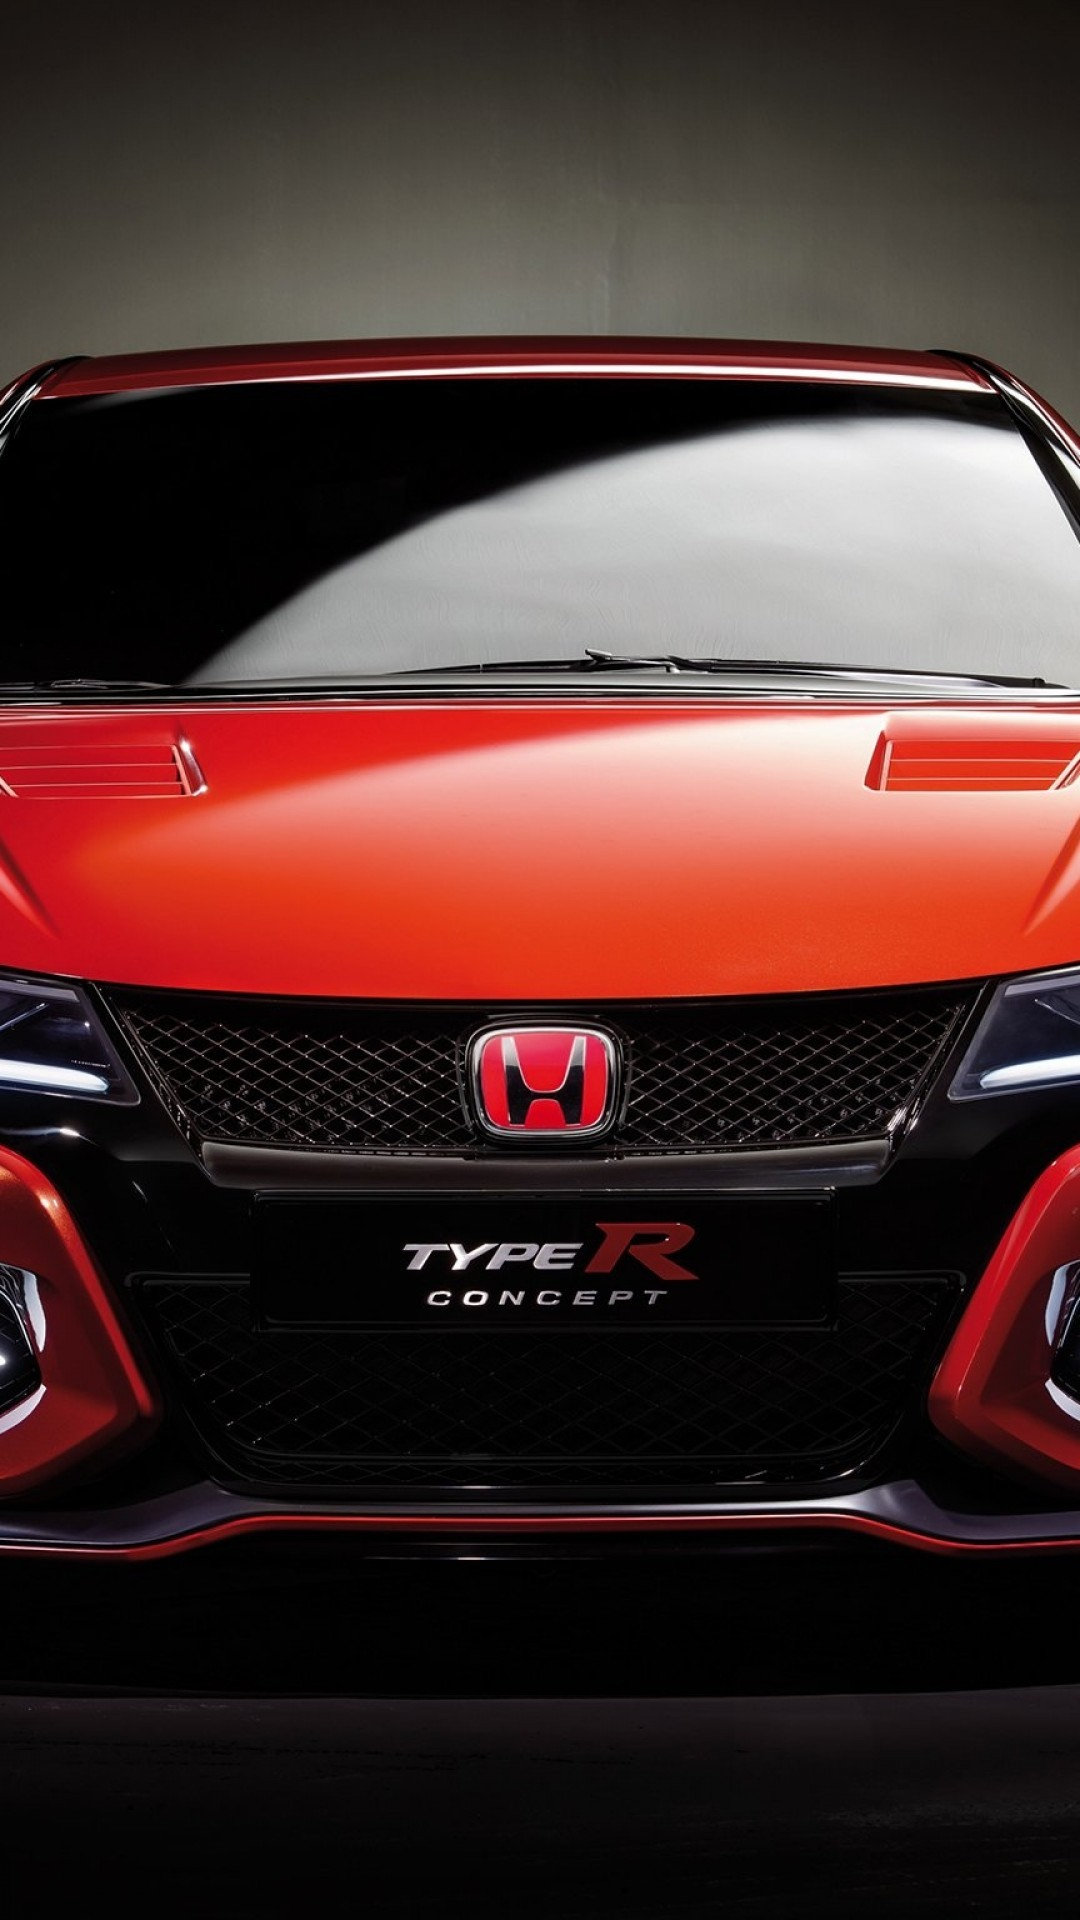 Pure high definition quality wallpapers for desktop mobiles in hd wide 4k ultra hd 5k 8k uhd monitor resolutions. Honda Civic Type R Red Cars Front View Iphone Wallpaper Honda Civic Type R 1080x1920 Wallpaper Teahub Io